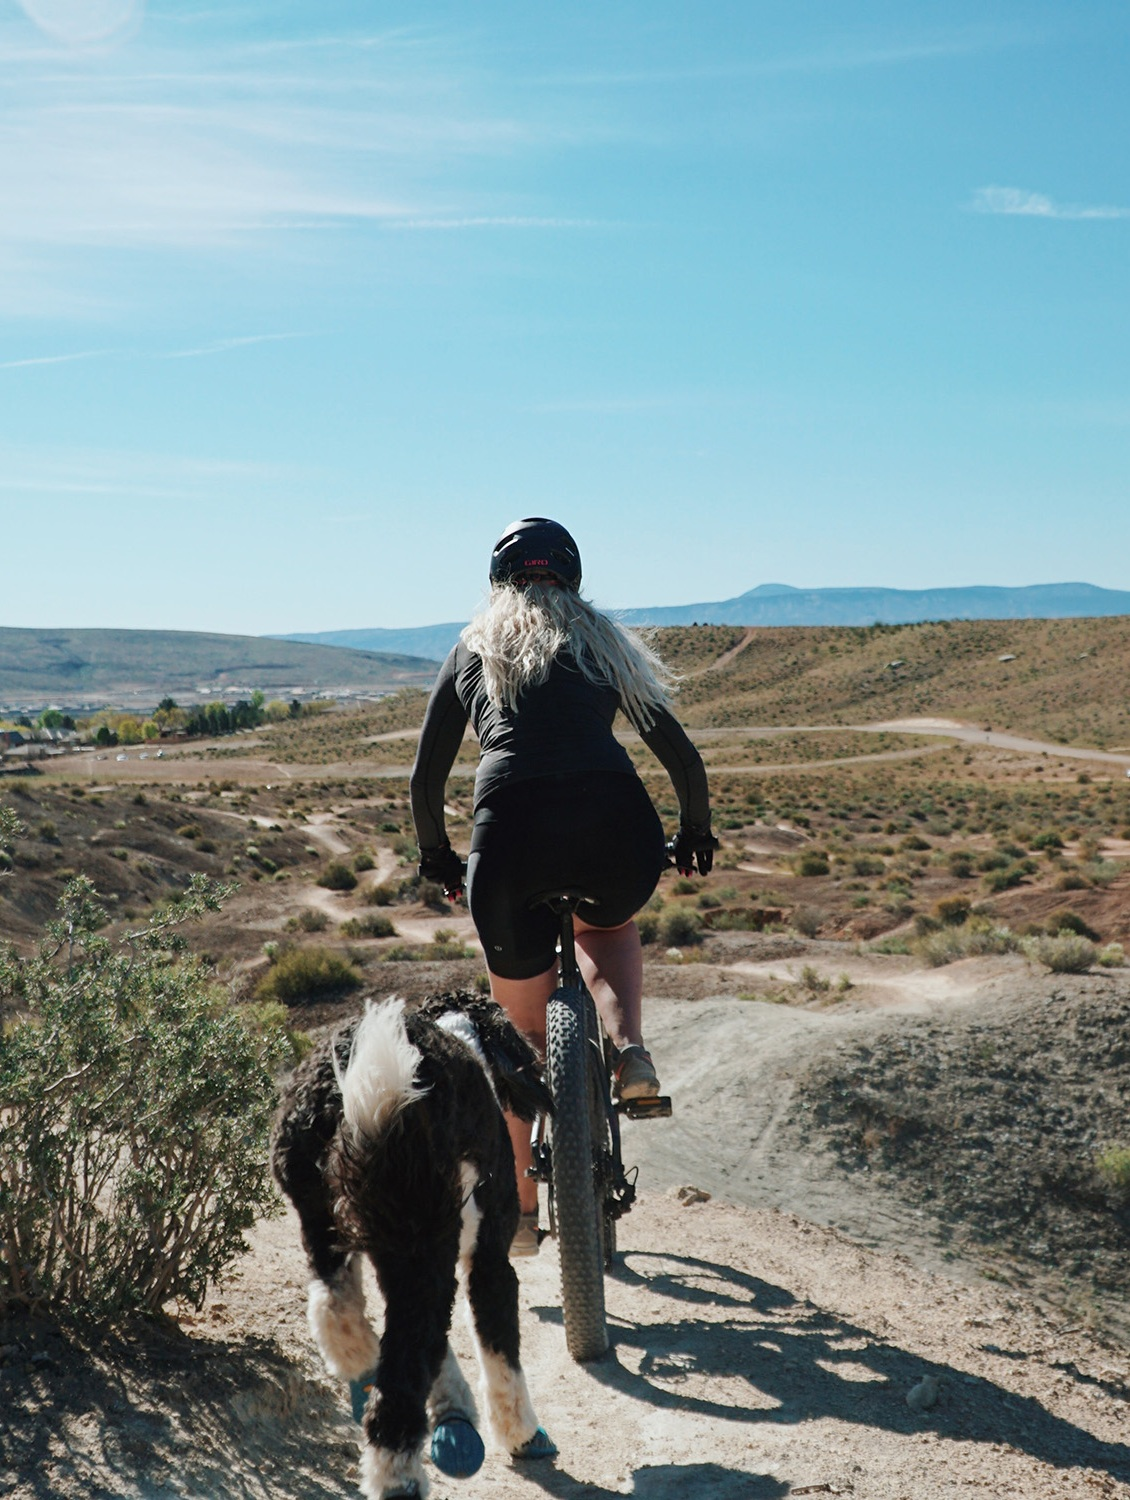 BIKING - From Road Biking to Mountain Biking, Salida is a perfect destination. Click here for more information about the many ways you can enjoy the open road (or trails).